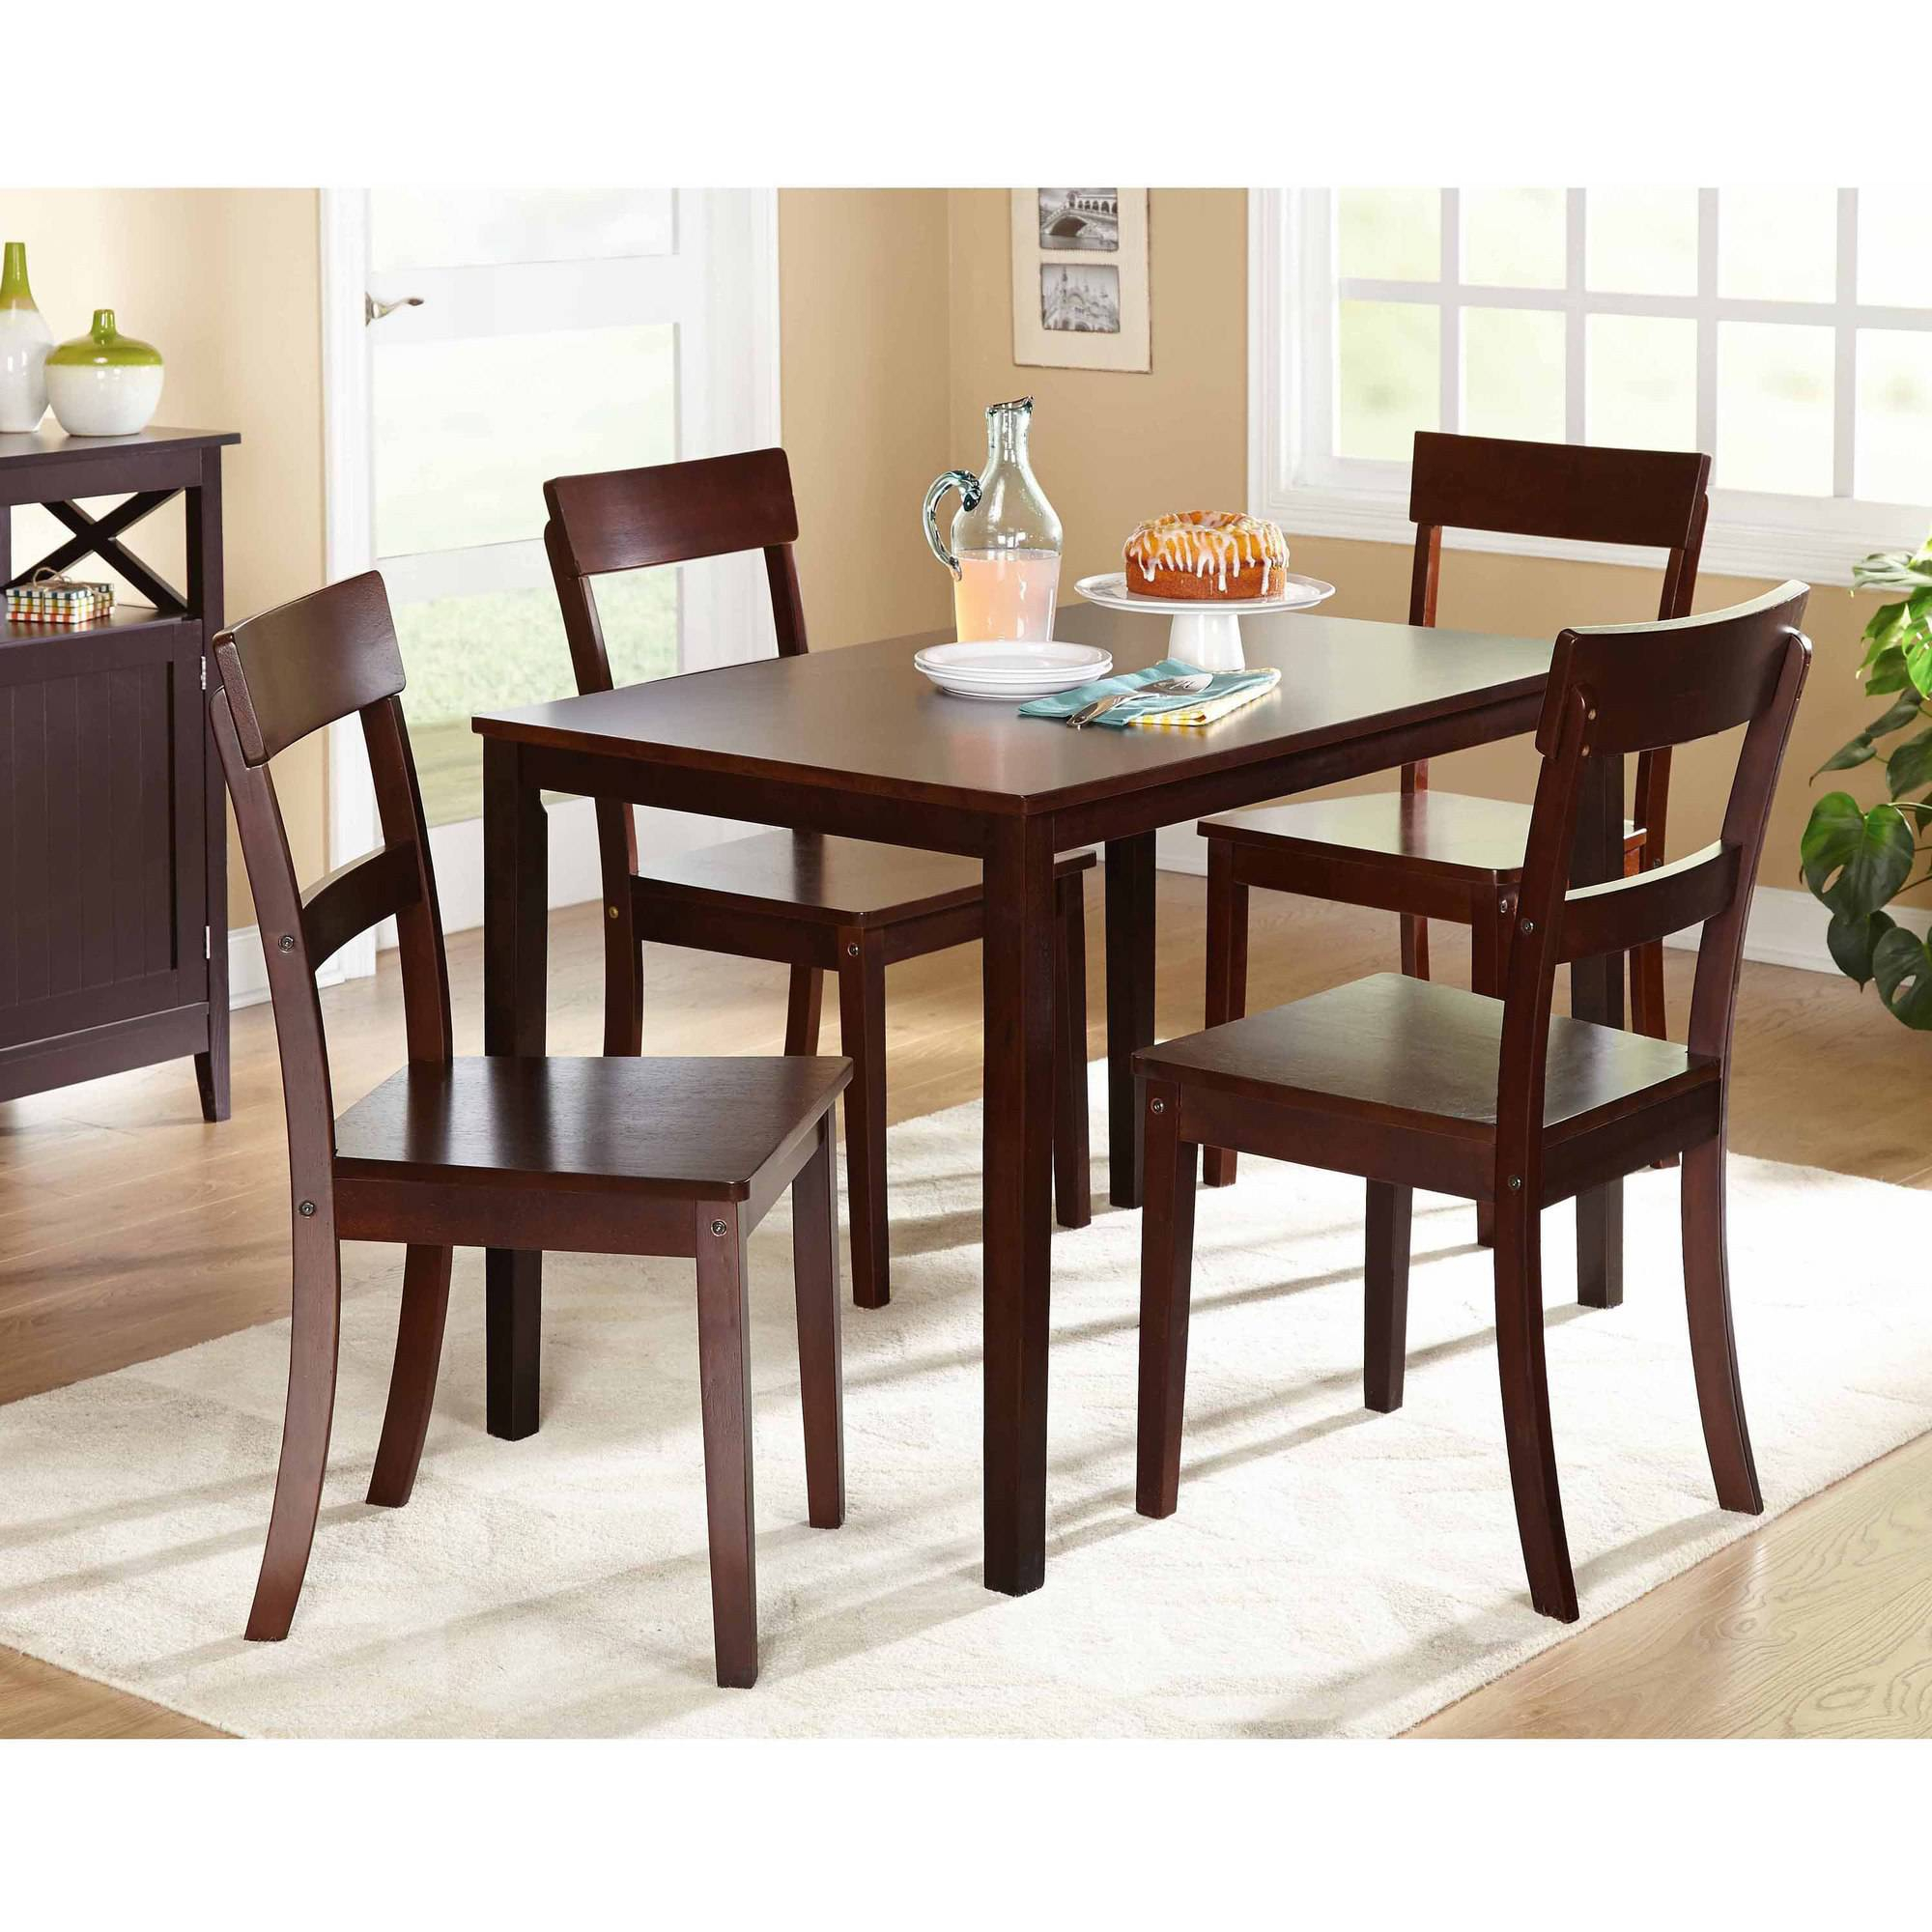 Beverly 5 Piece Dining Set, Multiple Finishes – Walmart Intended For Latest 5 Piece Dining Sets (#9 of 20)